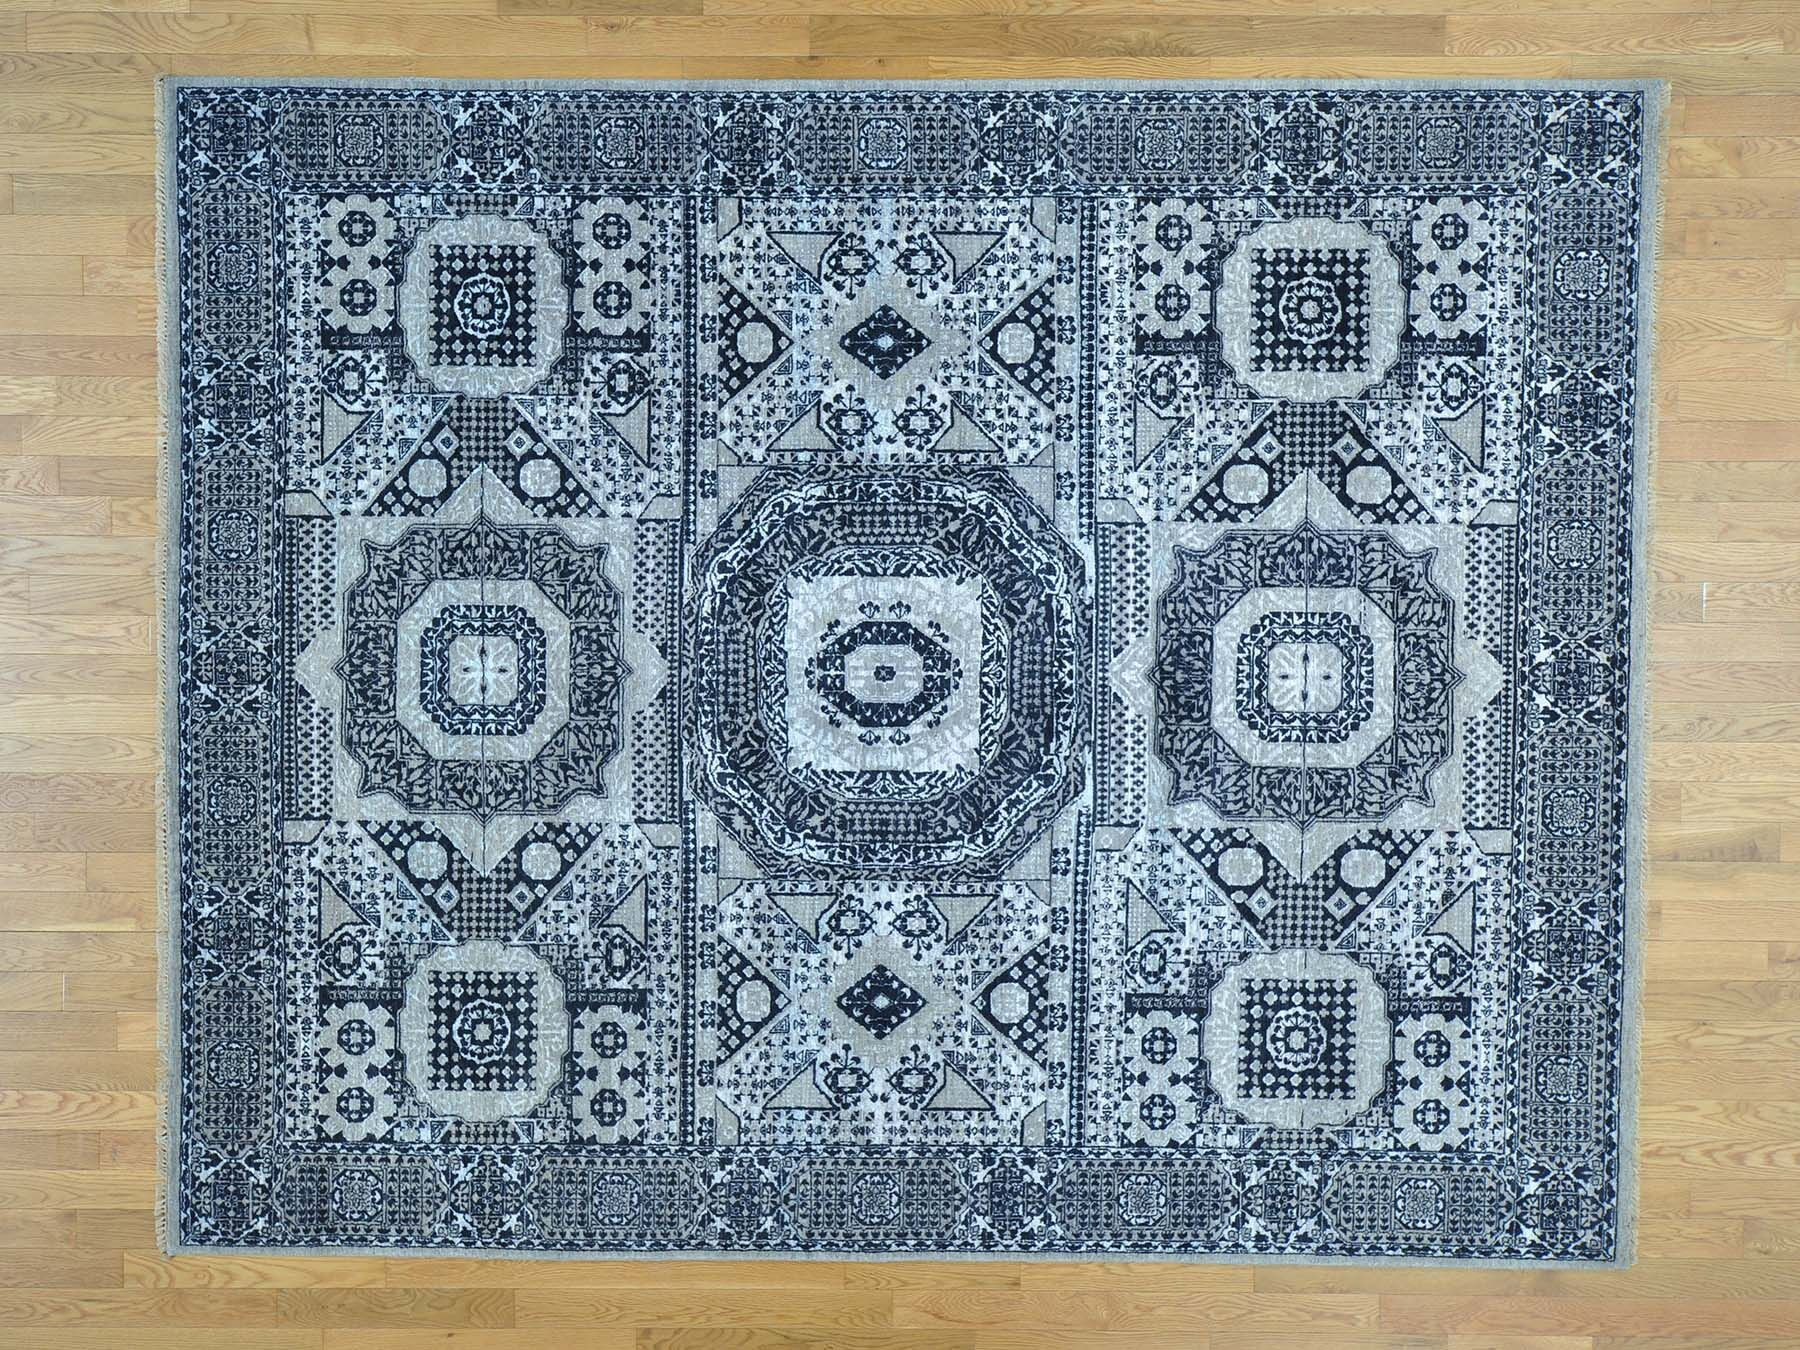 One-of-a-Kind Brackenridge Mamluk Design Hand-Knotted Blue Wool/Silk Area Rug